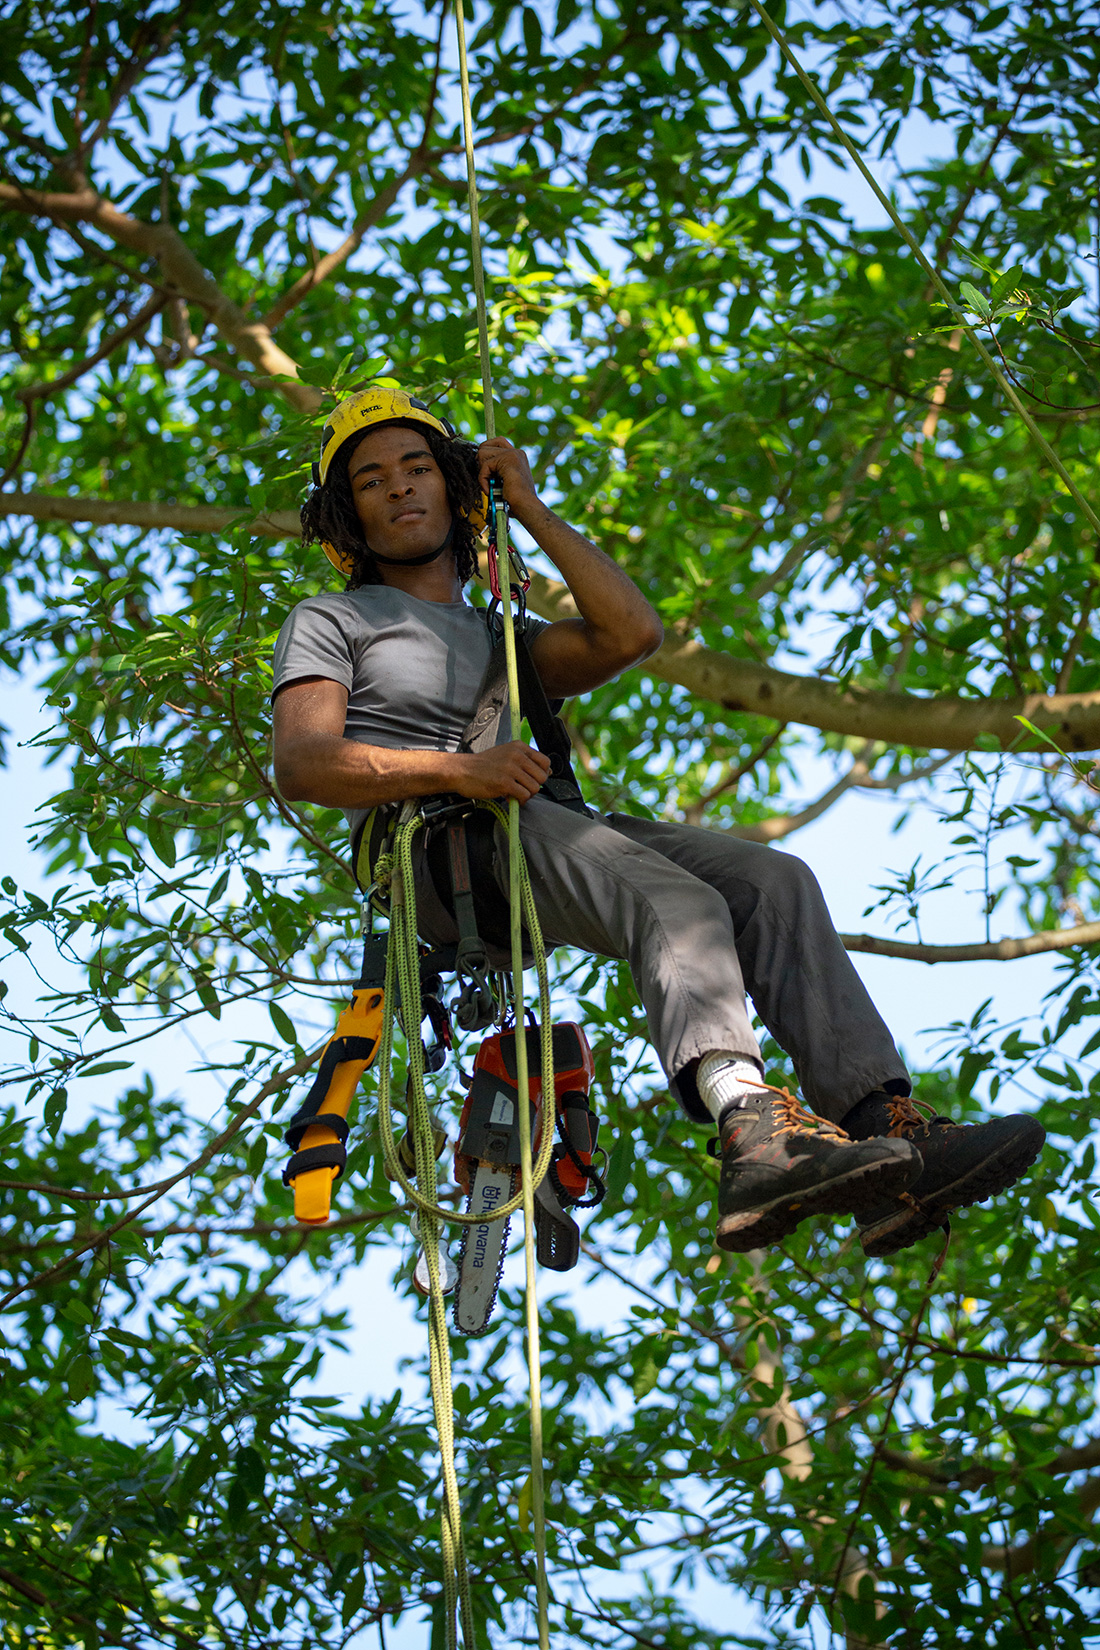 Andressohn works for True Tree Service in Miami, where he is a production arborist, trained to safely ascend and descend trees in order to care for them. Our cities need many more like him. Urban forestry is expected to see a 10% increase in job openings for entry-level positions by 2028.